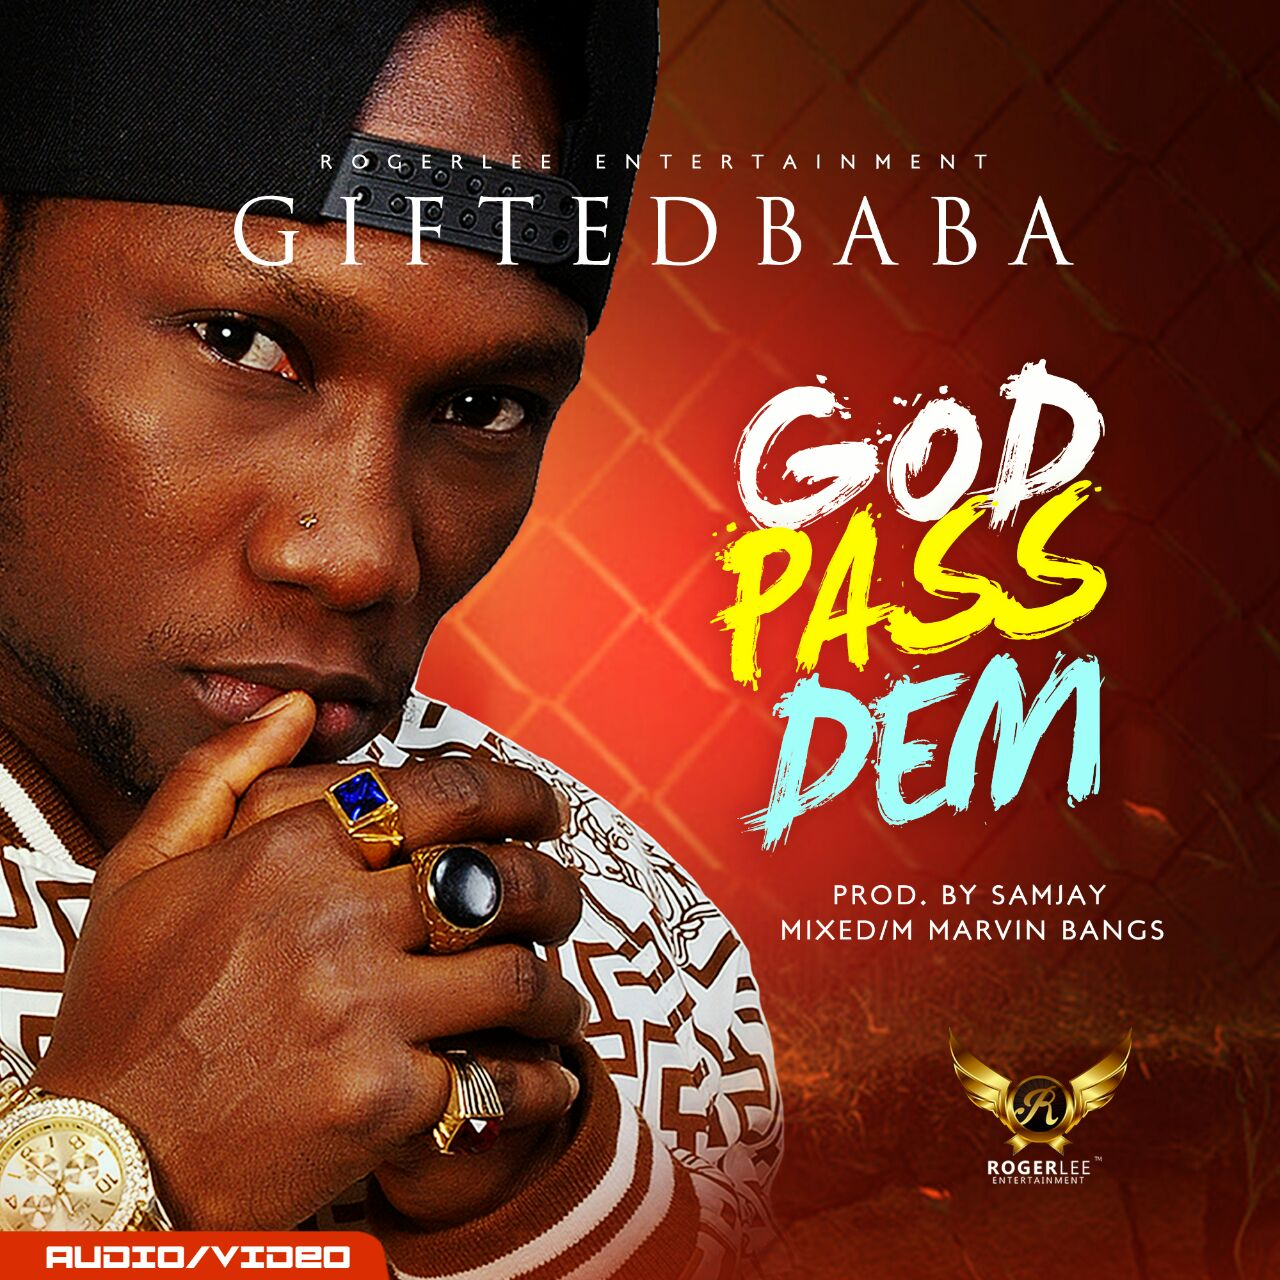 VIDEO: Gifted Baba – God Pass Dem